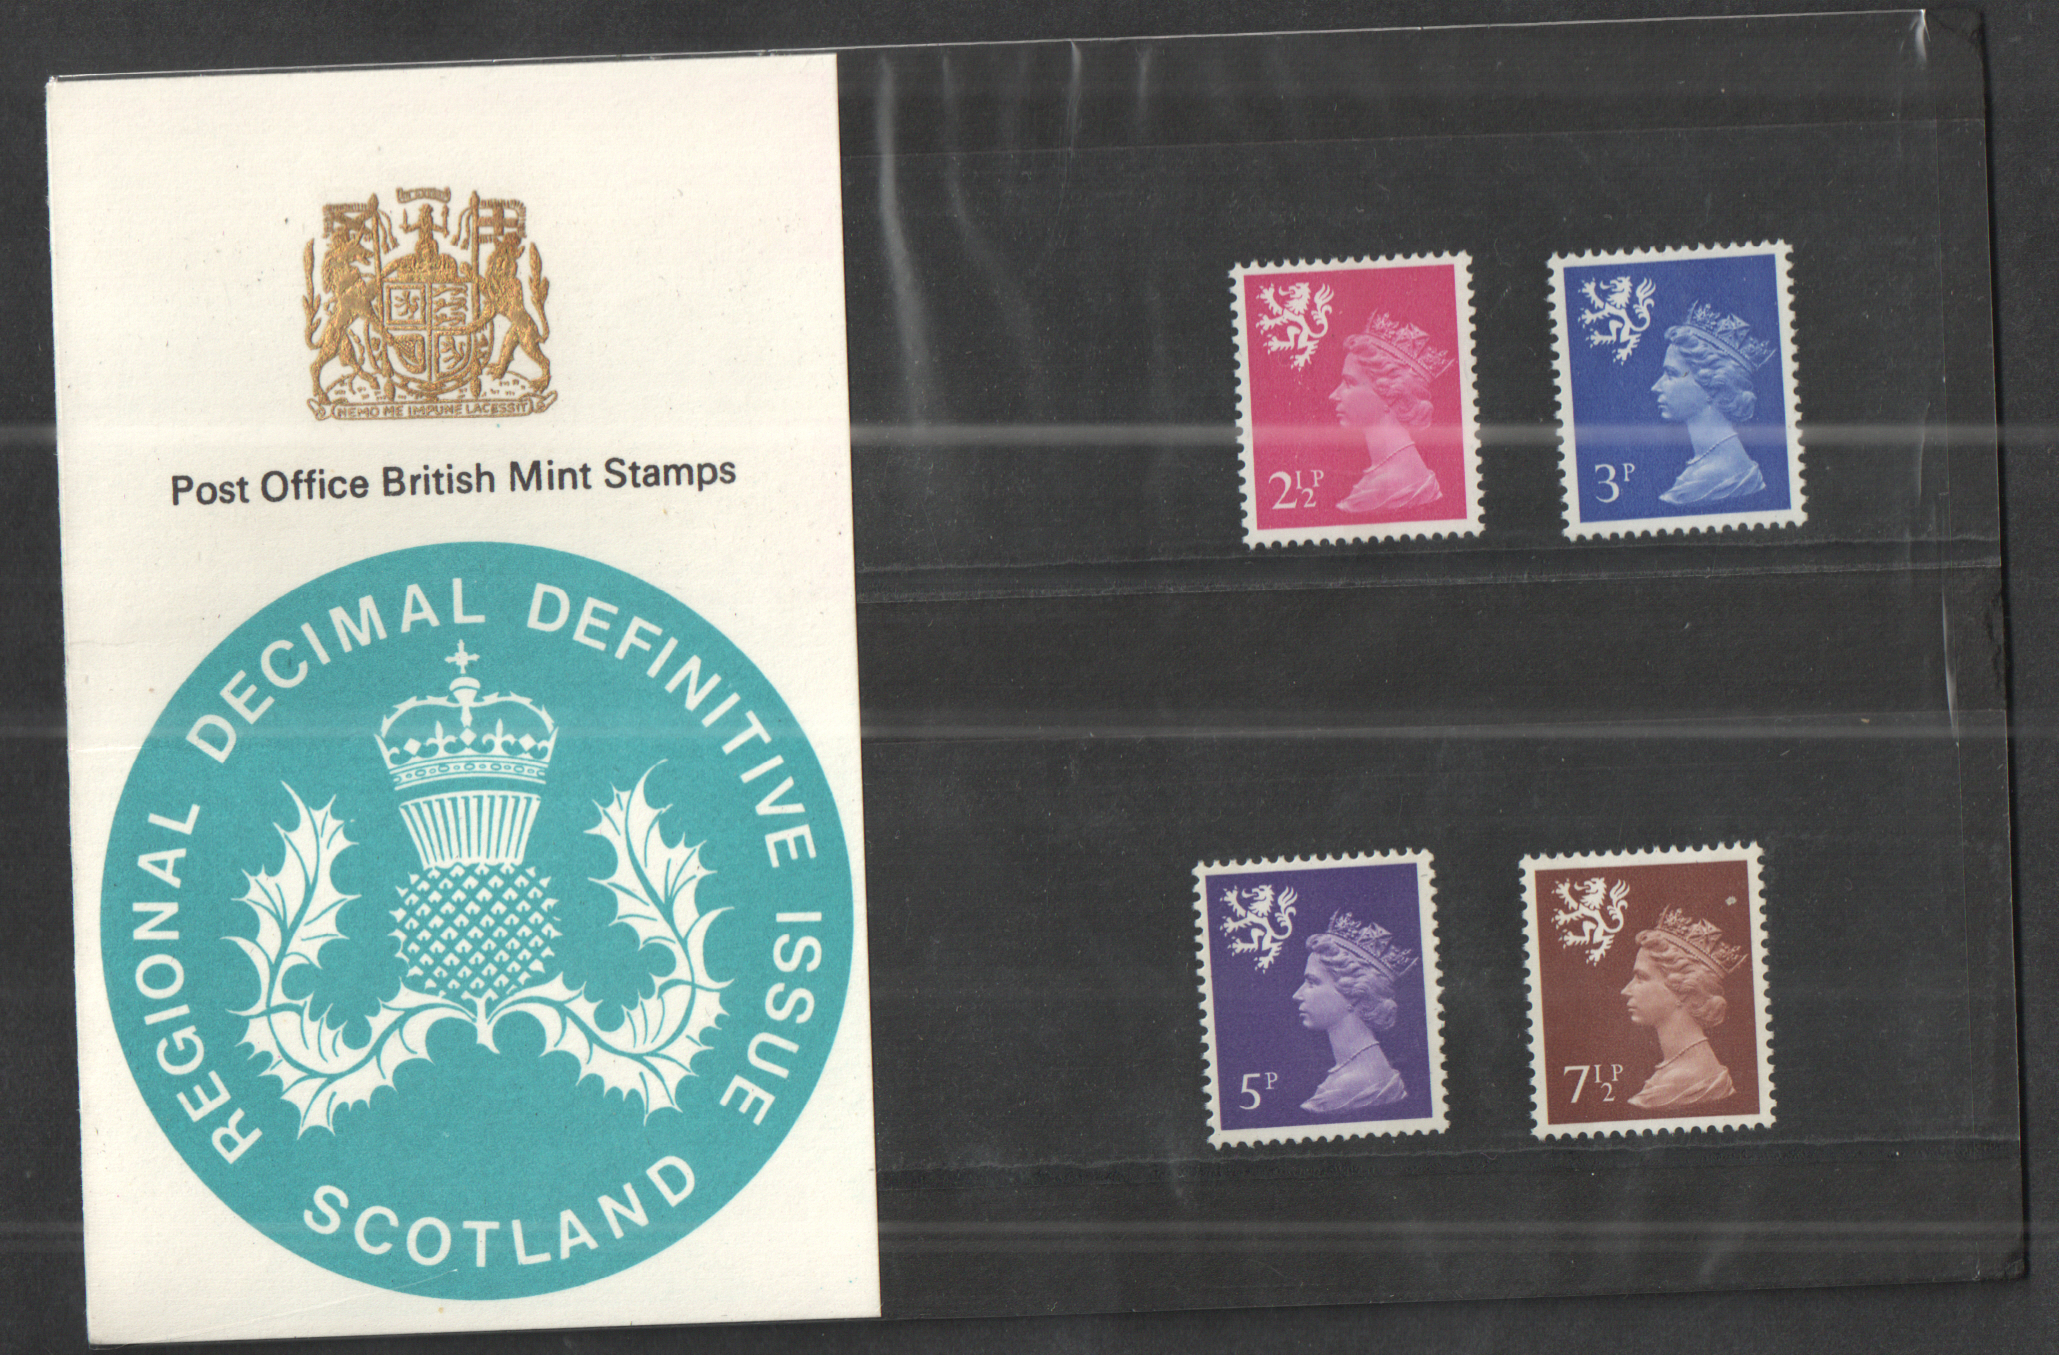 1971 Scotland Type A - No Spur on Lion's hind leg Definitive Royal Mail Presentation Pack 27